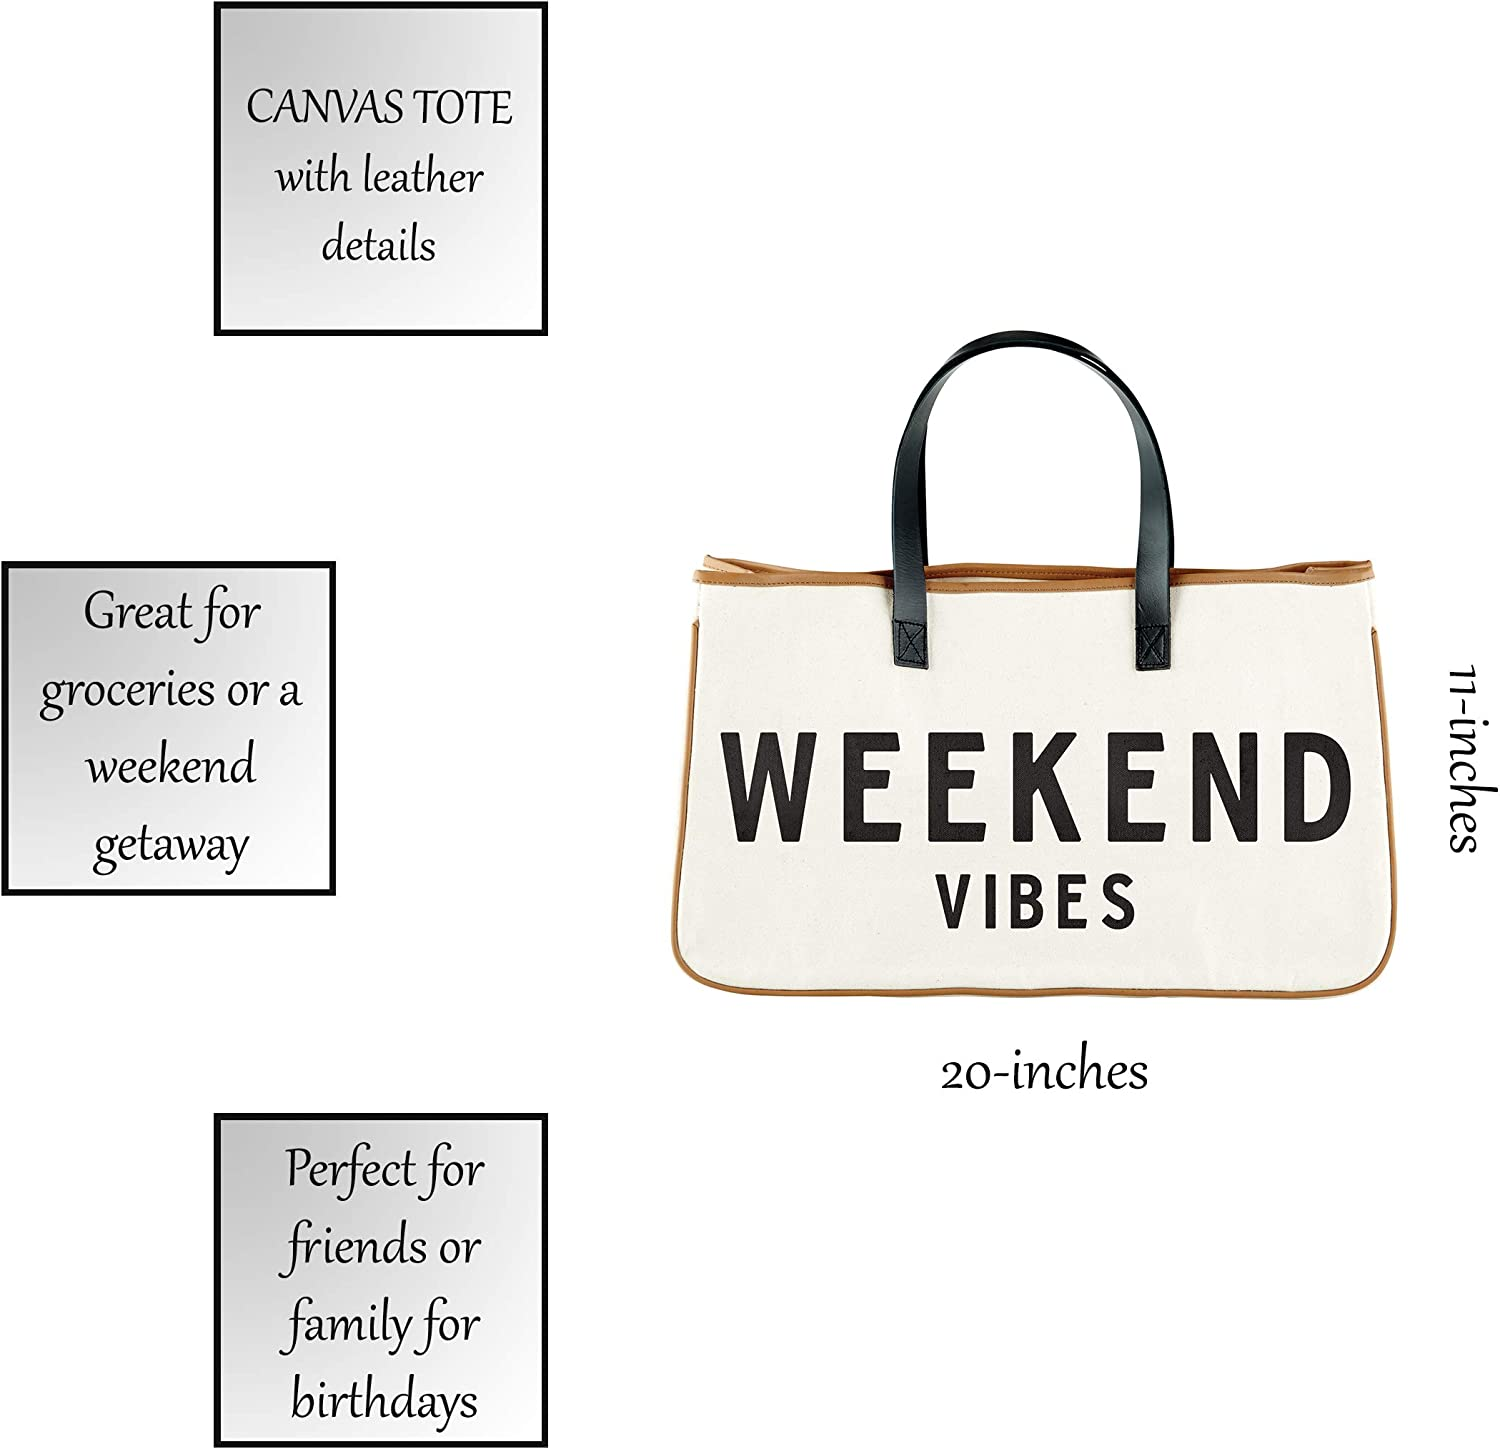 40th Birthday Totes 30th 40th Birthday Bash Beach Bags for Sisters Trip Girls Weekend Getaway Beaches and Besties Beach Party Swag Bags